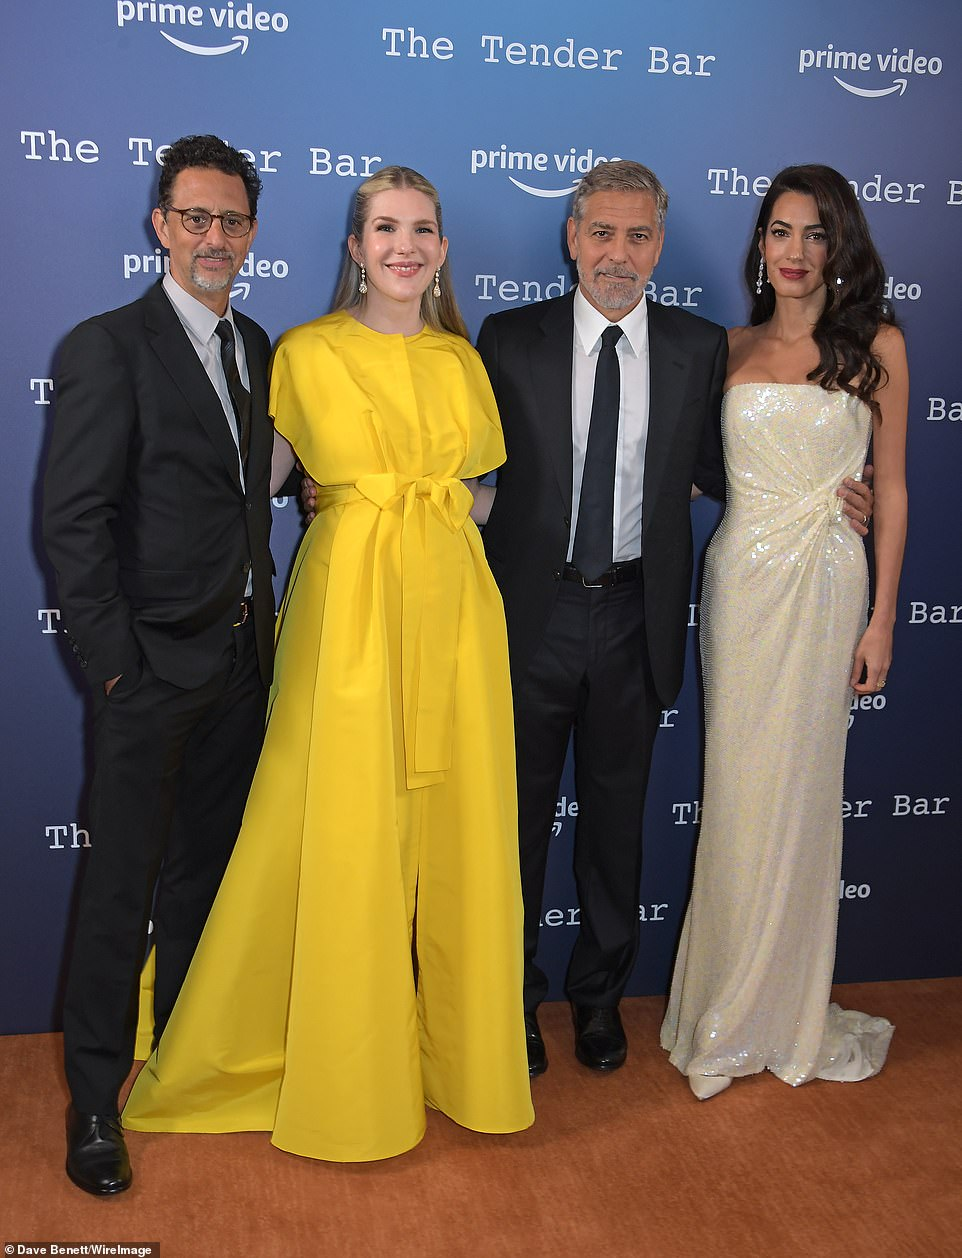 Say cheese! At the premiere, George and Amal were seen posing with the film's star Lily Rabe, as well as director Grant Heslov